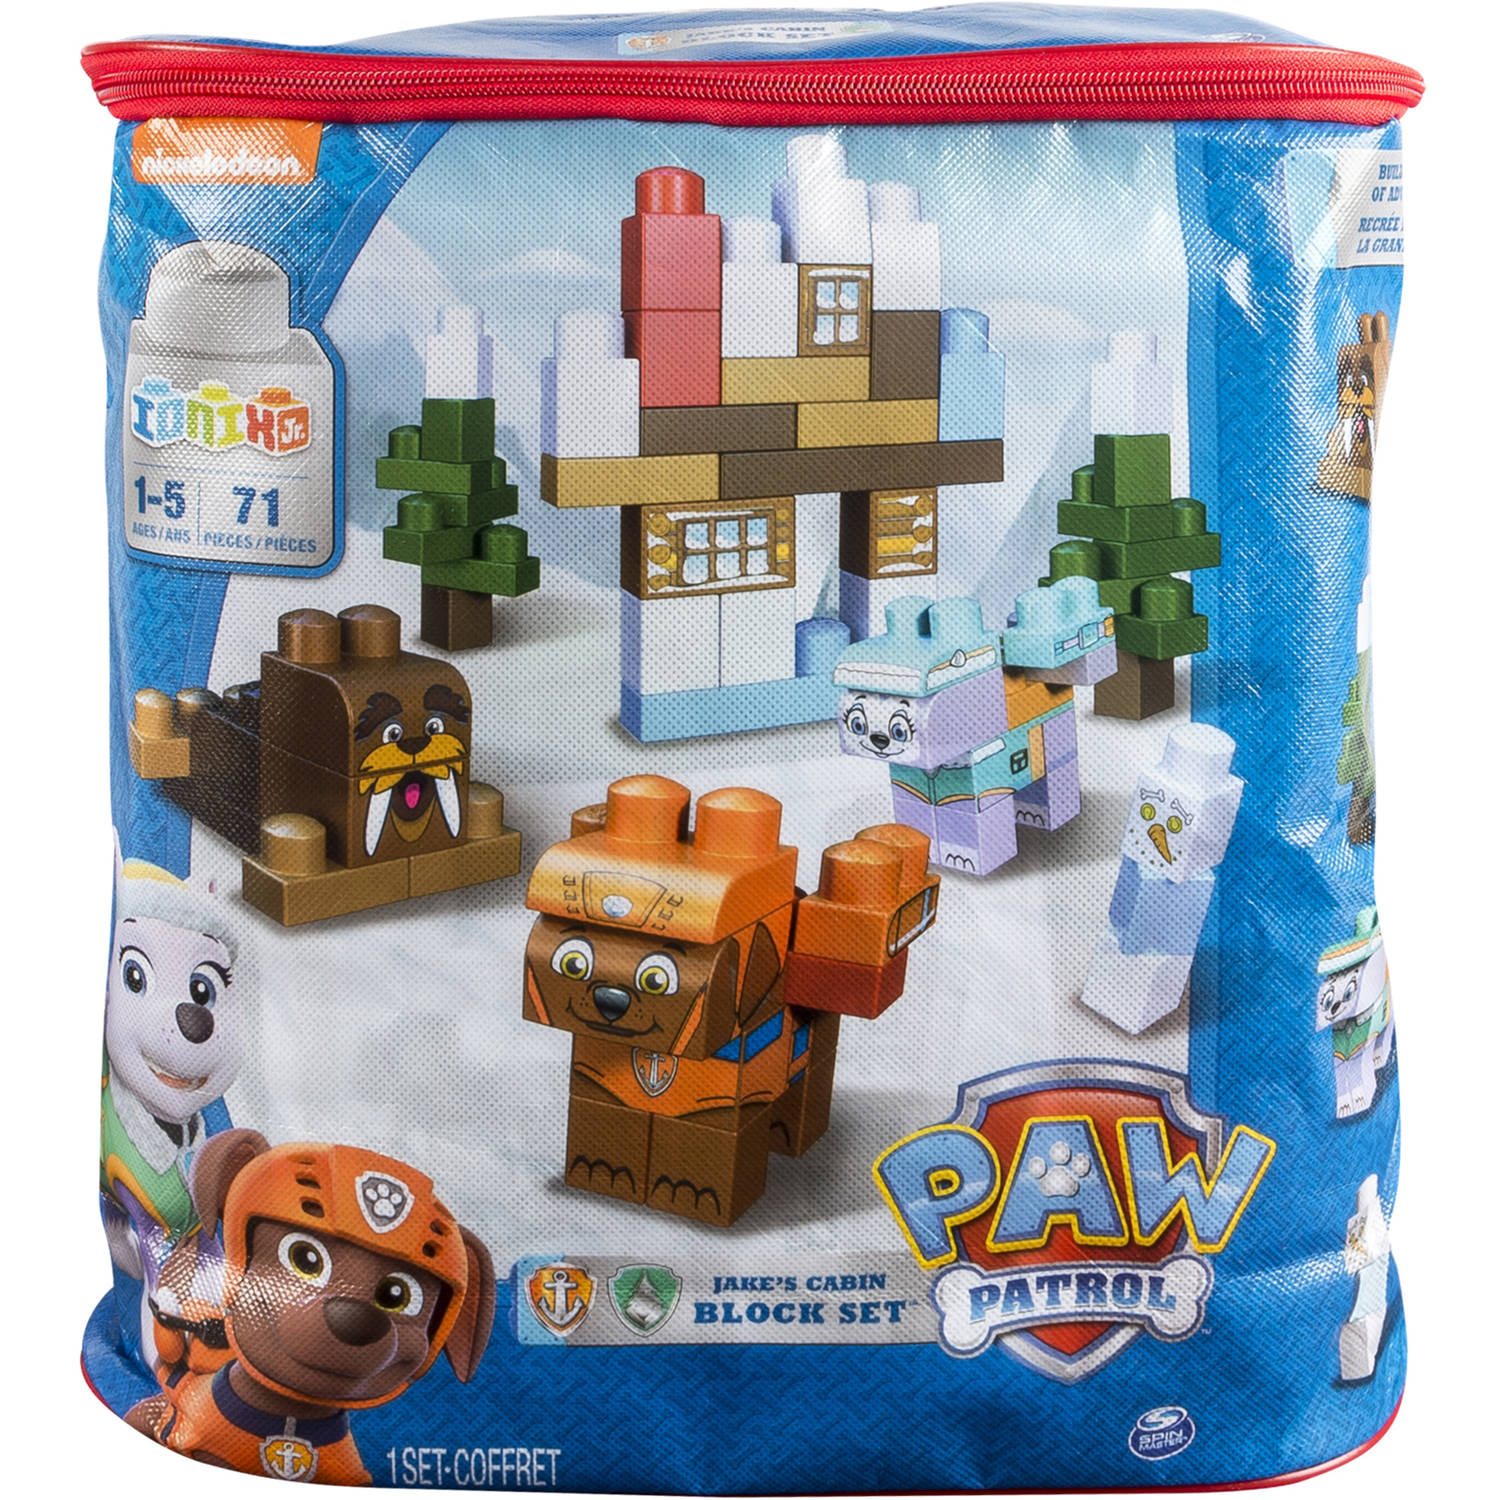 IONIX Jr. PAW Patrol, Jake's Cabin Block Set